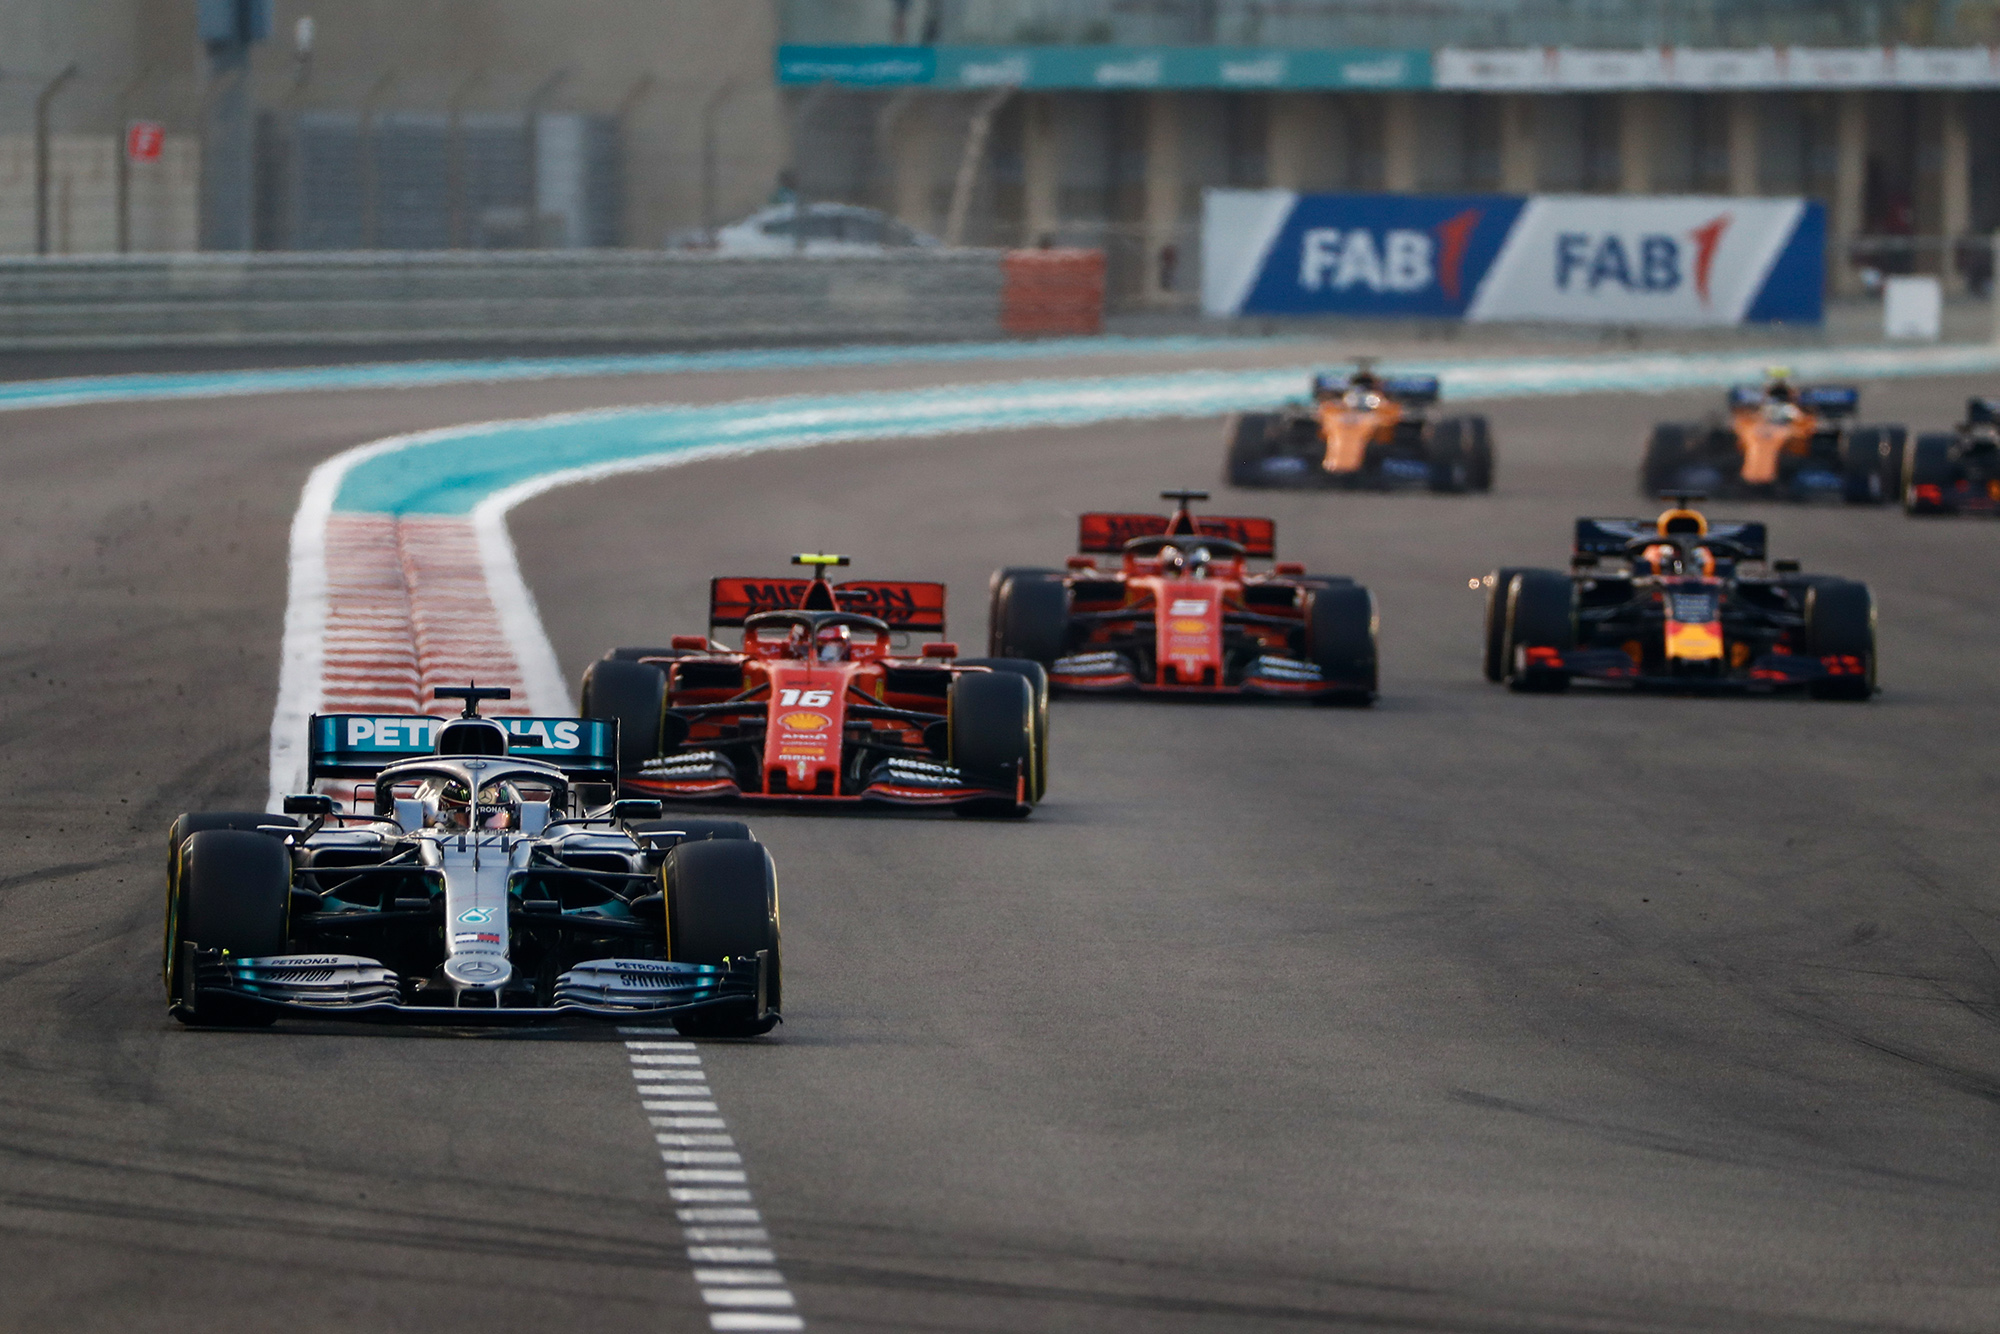 Max Verstappen defends against Sebastian Vettel on the first lap of the 2019 Abu Dhabi Grand Prix